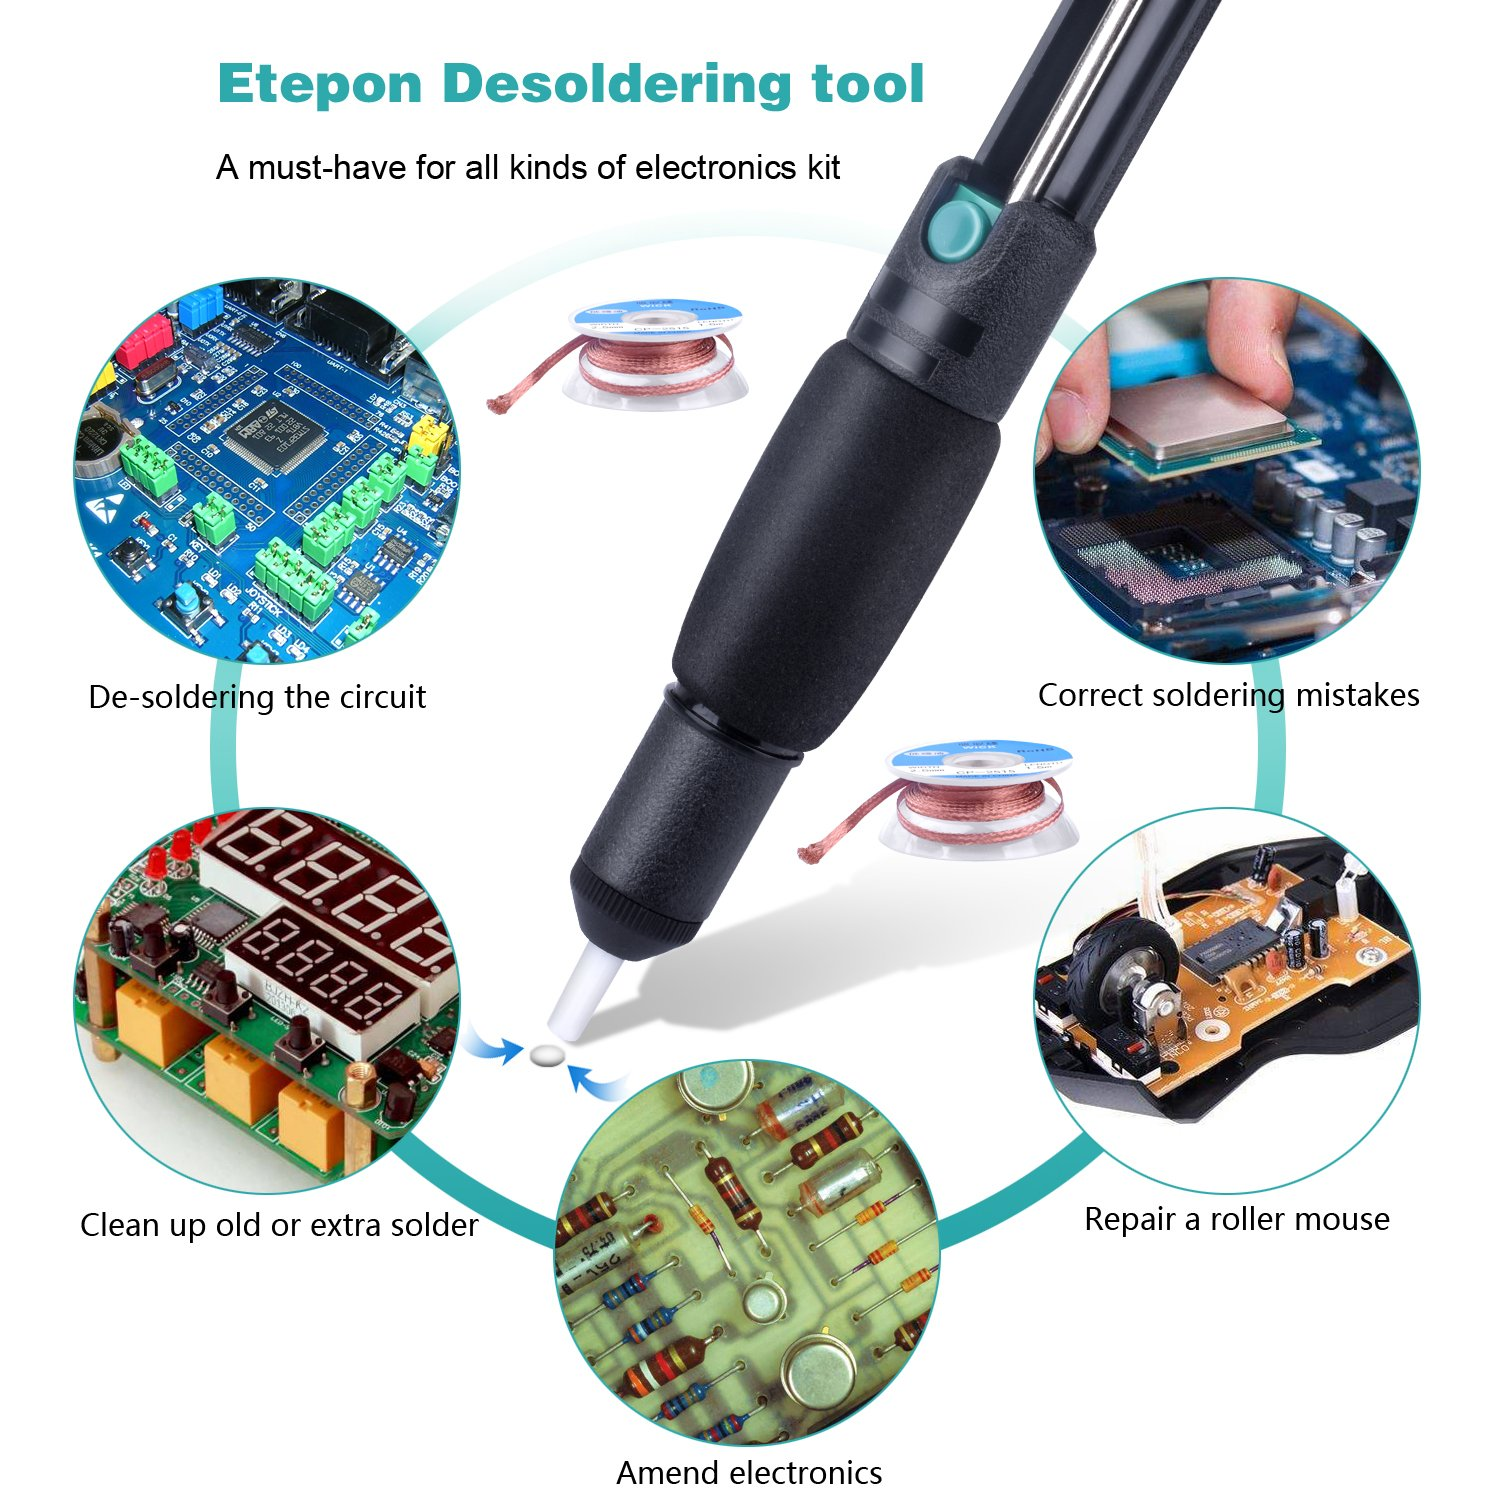 Etepon 3 In1 Solder Accessories Anti Static Sucker Copper Braid For Removing From Printed Circuit Boards Desoldering Vacuum Pump 2pcs Wick 25mm Width 15m Length Assist Tool Kit